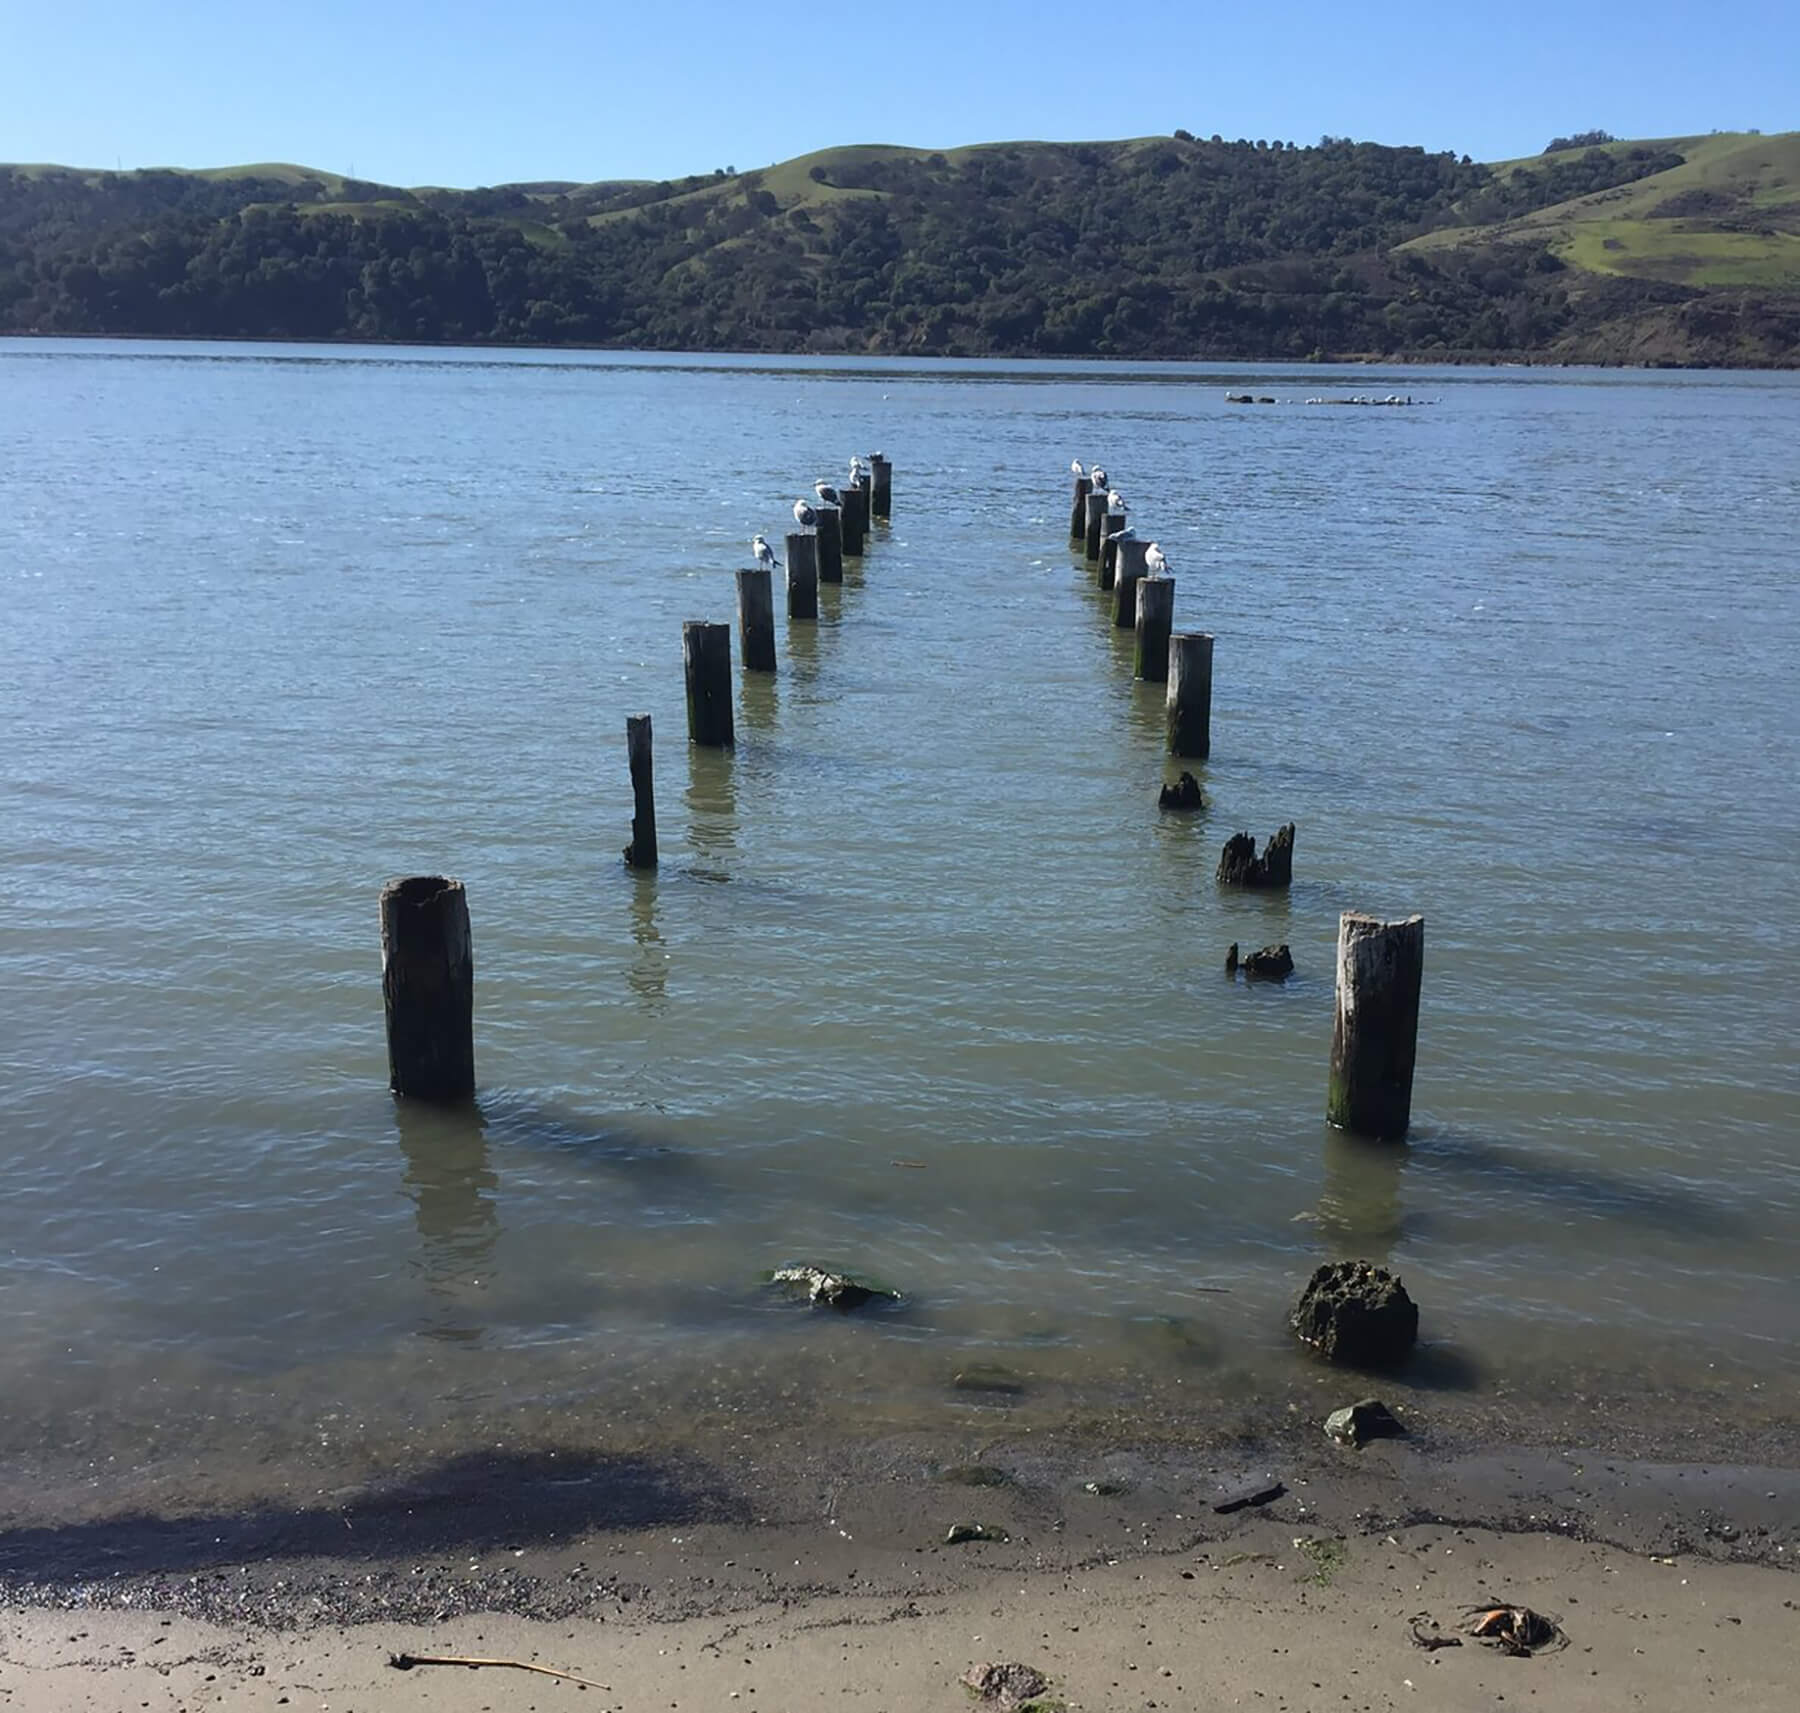 Remains of wharf at Benicia where London might have moored his boat